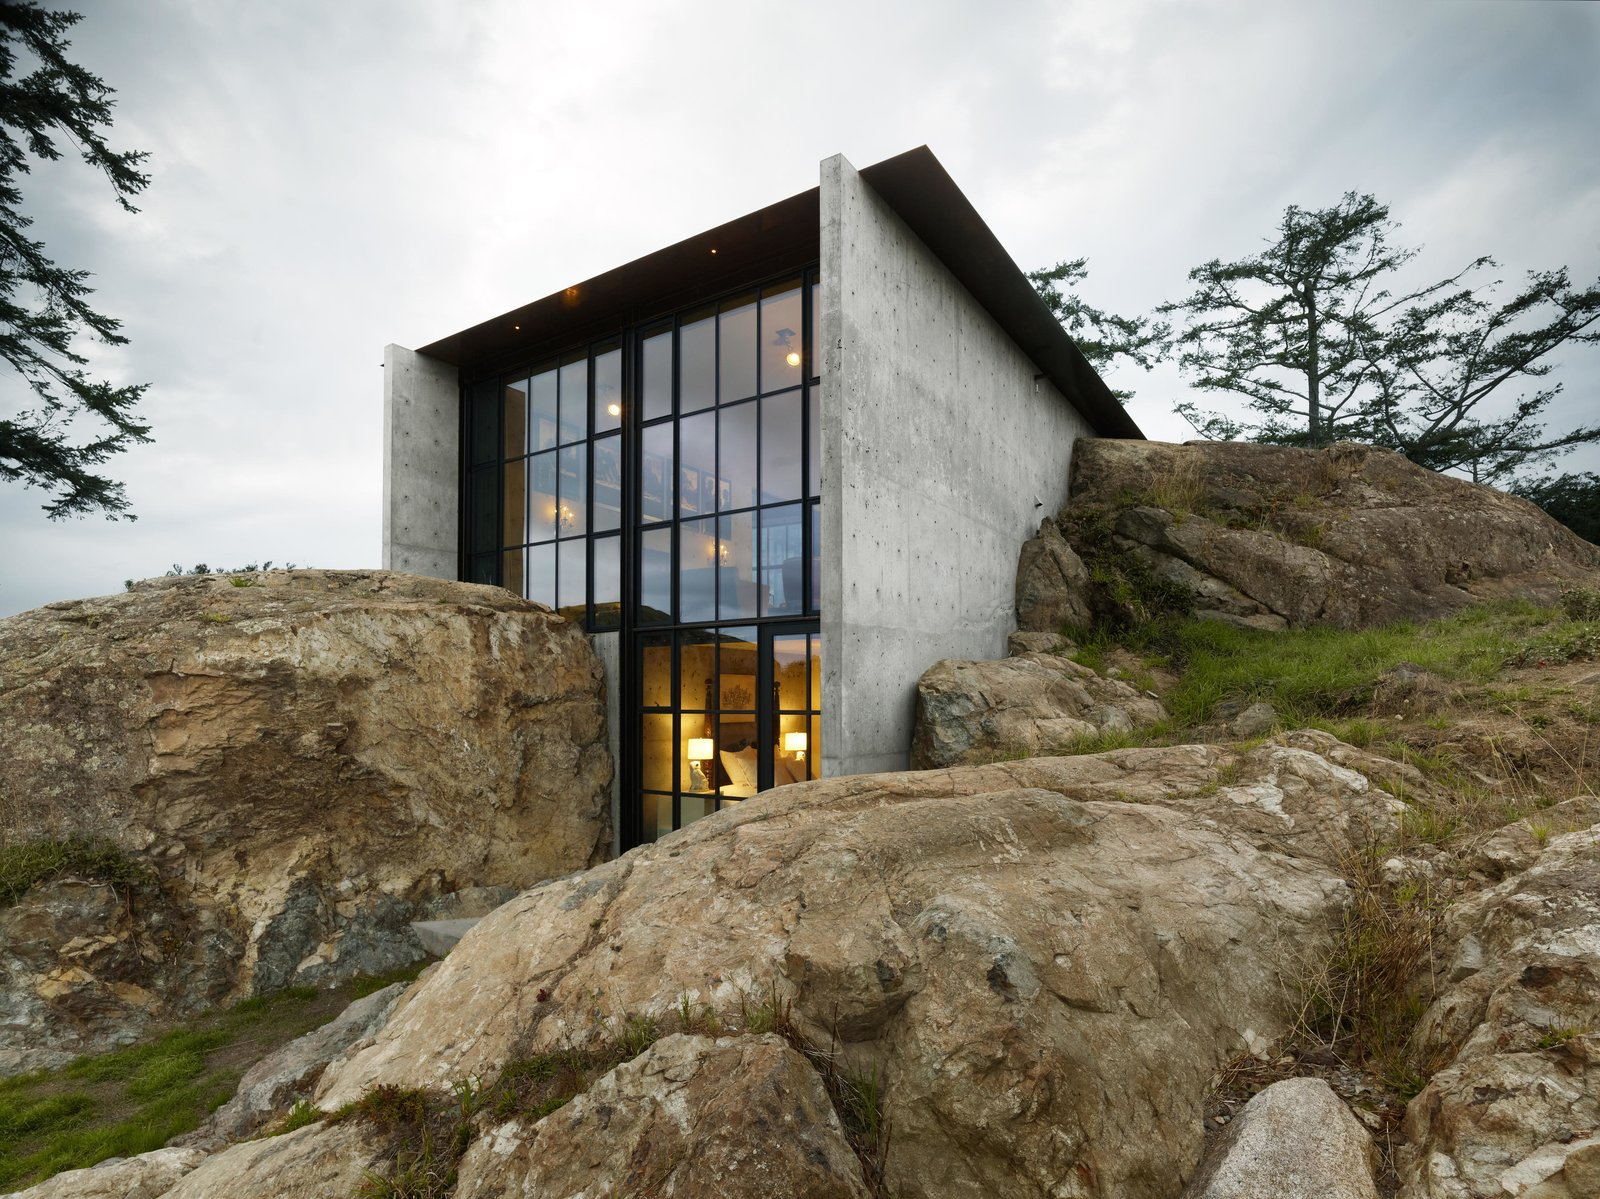 Boulders, Slope, Exterior, House Building Type, Concrete Siding Material, Shed RoofLine, and Glass Siding Material The Pierre | Olson Kundig  Photos from The Pierre